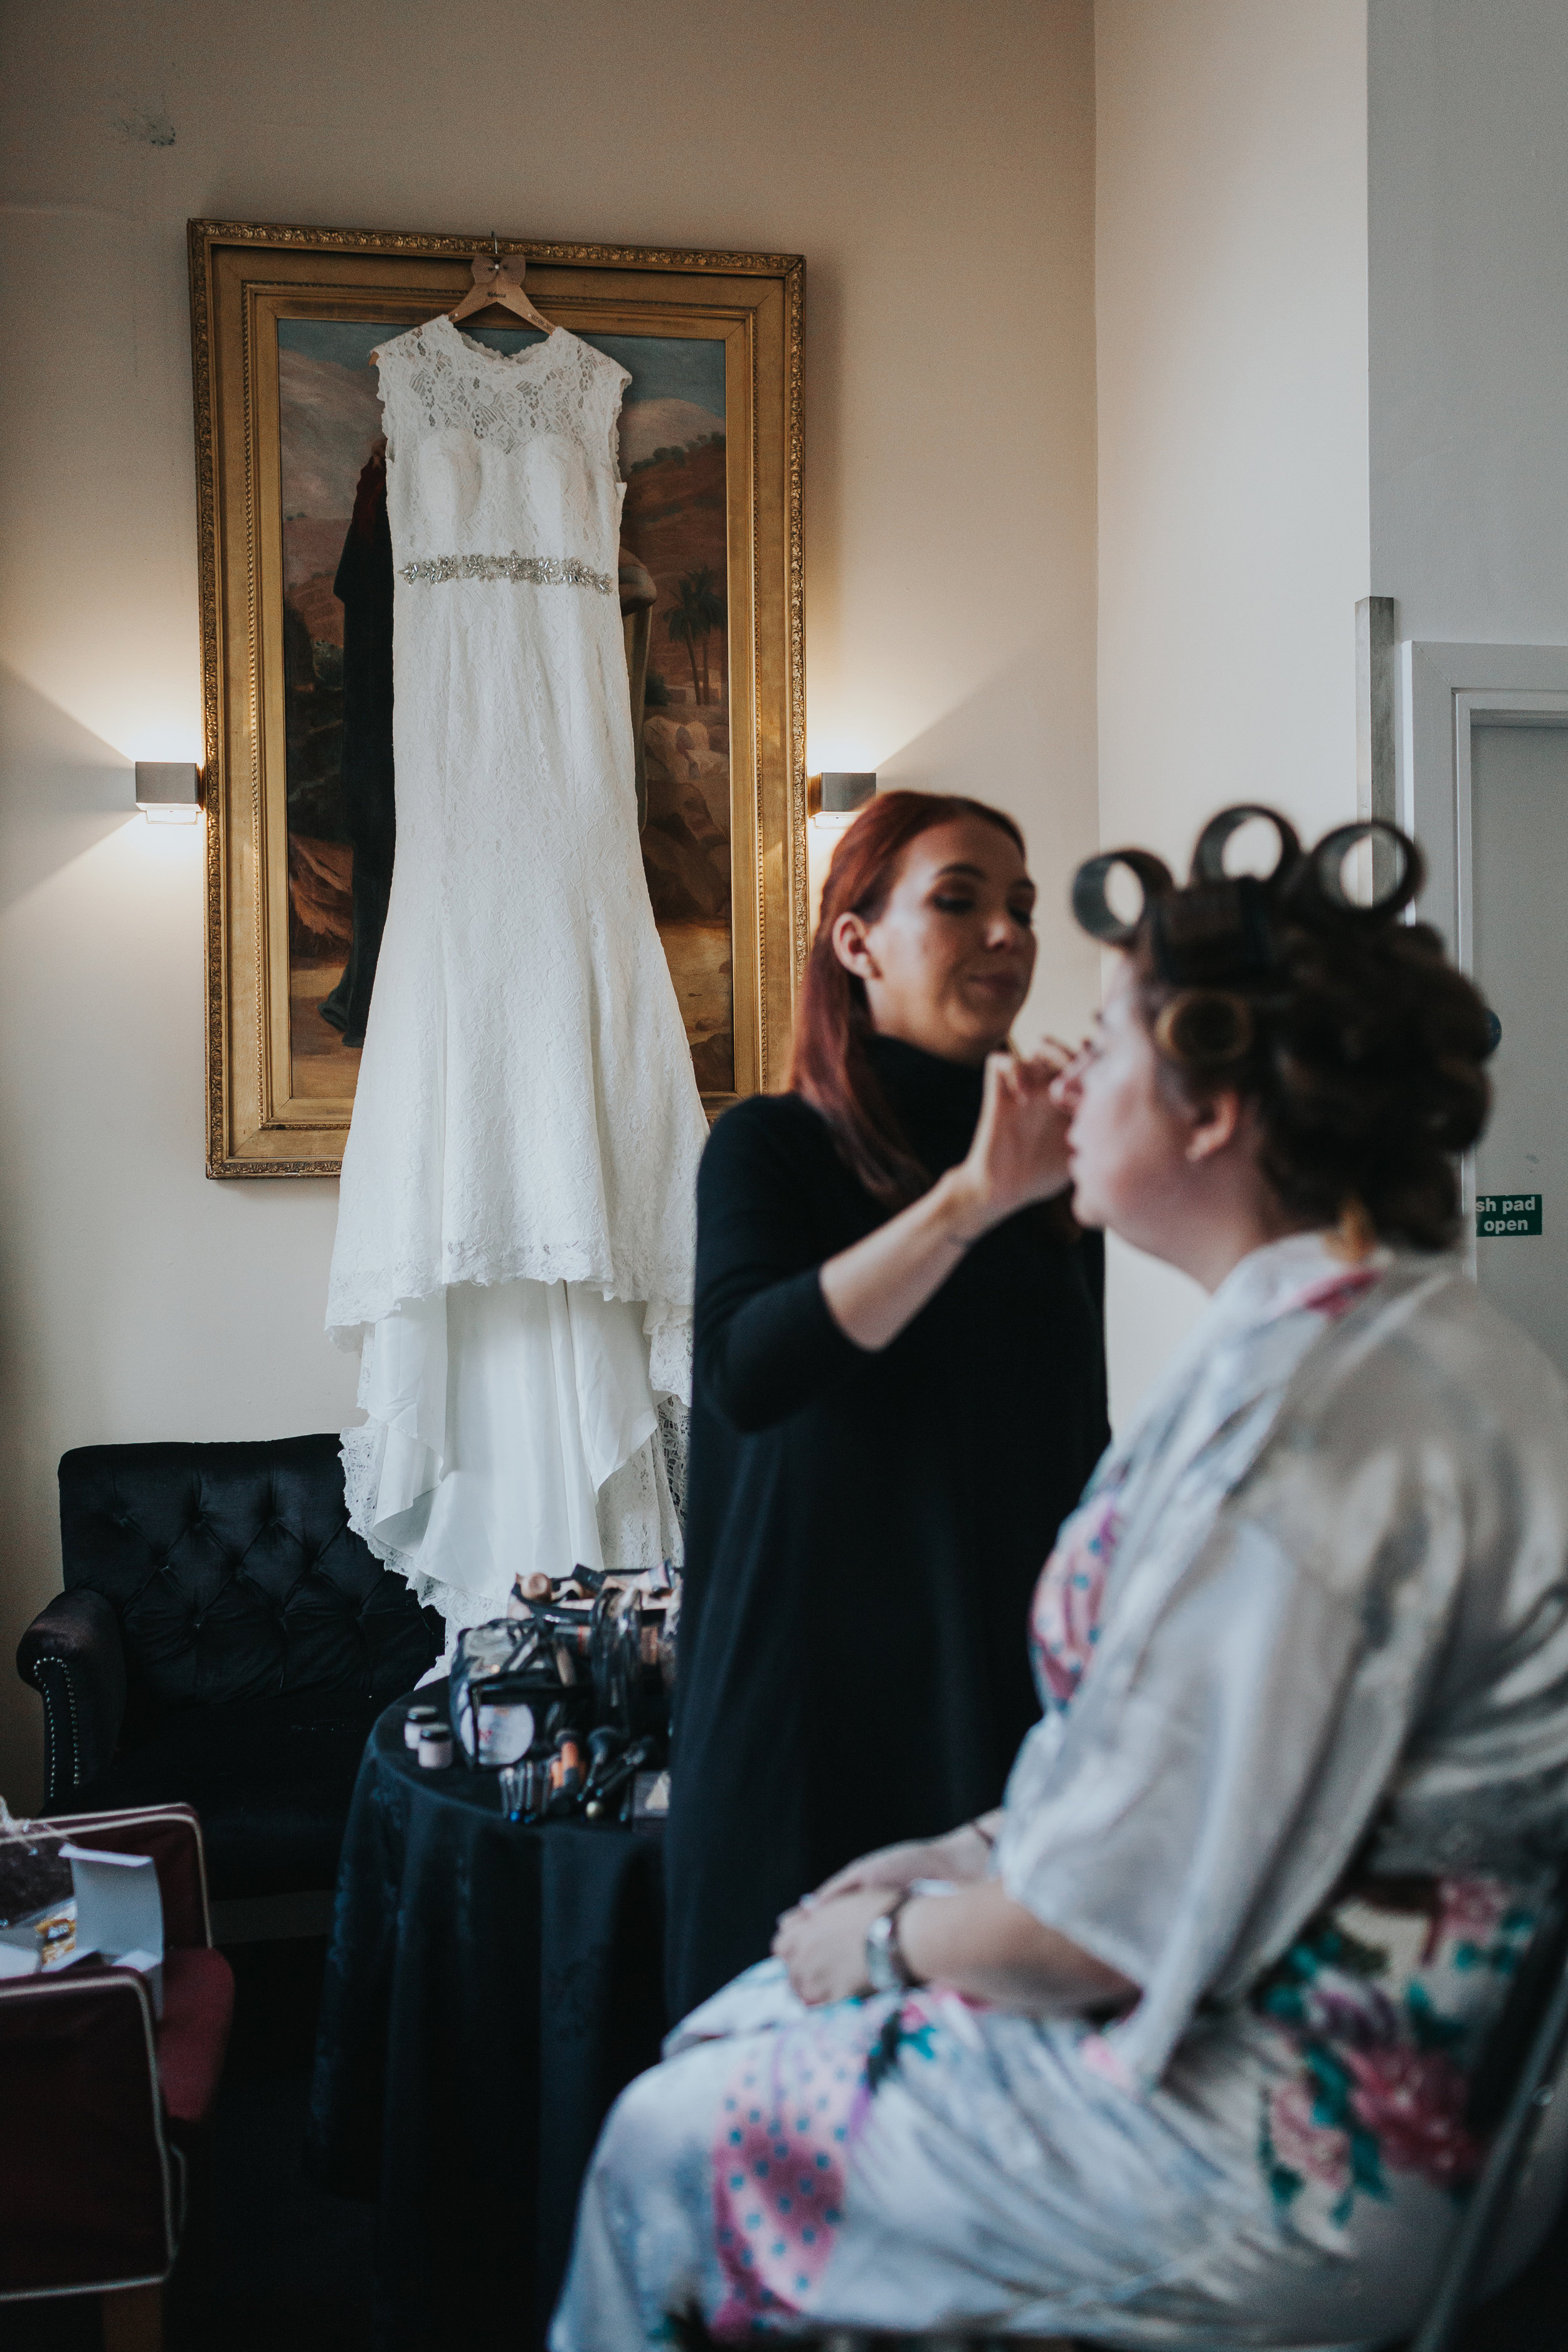 Bride in front of wedding dress getting her make up done.